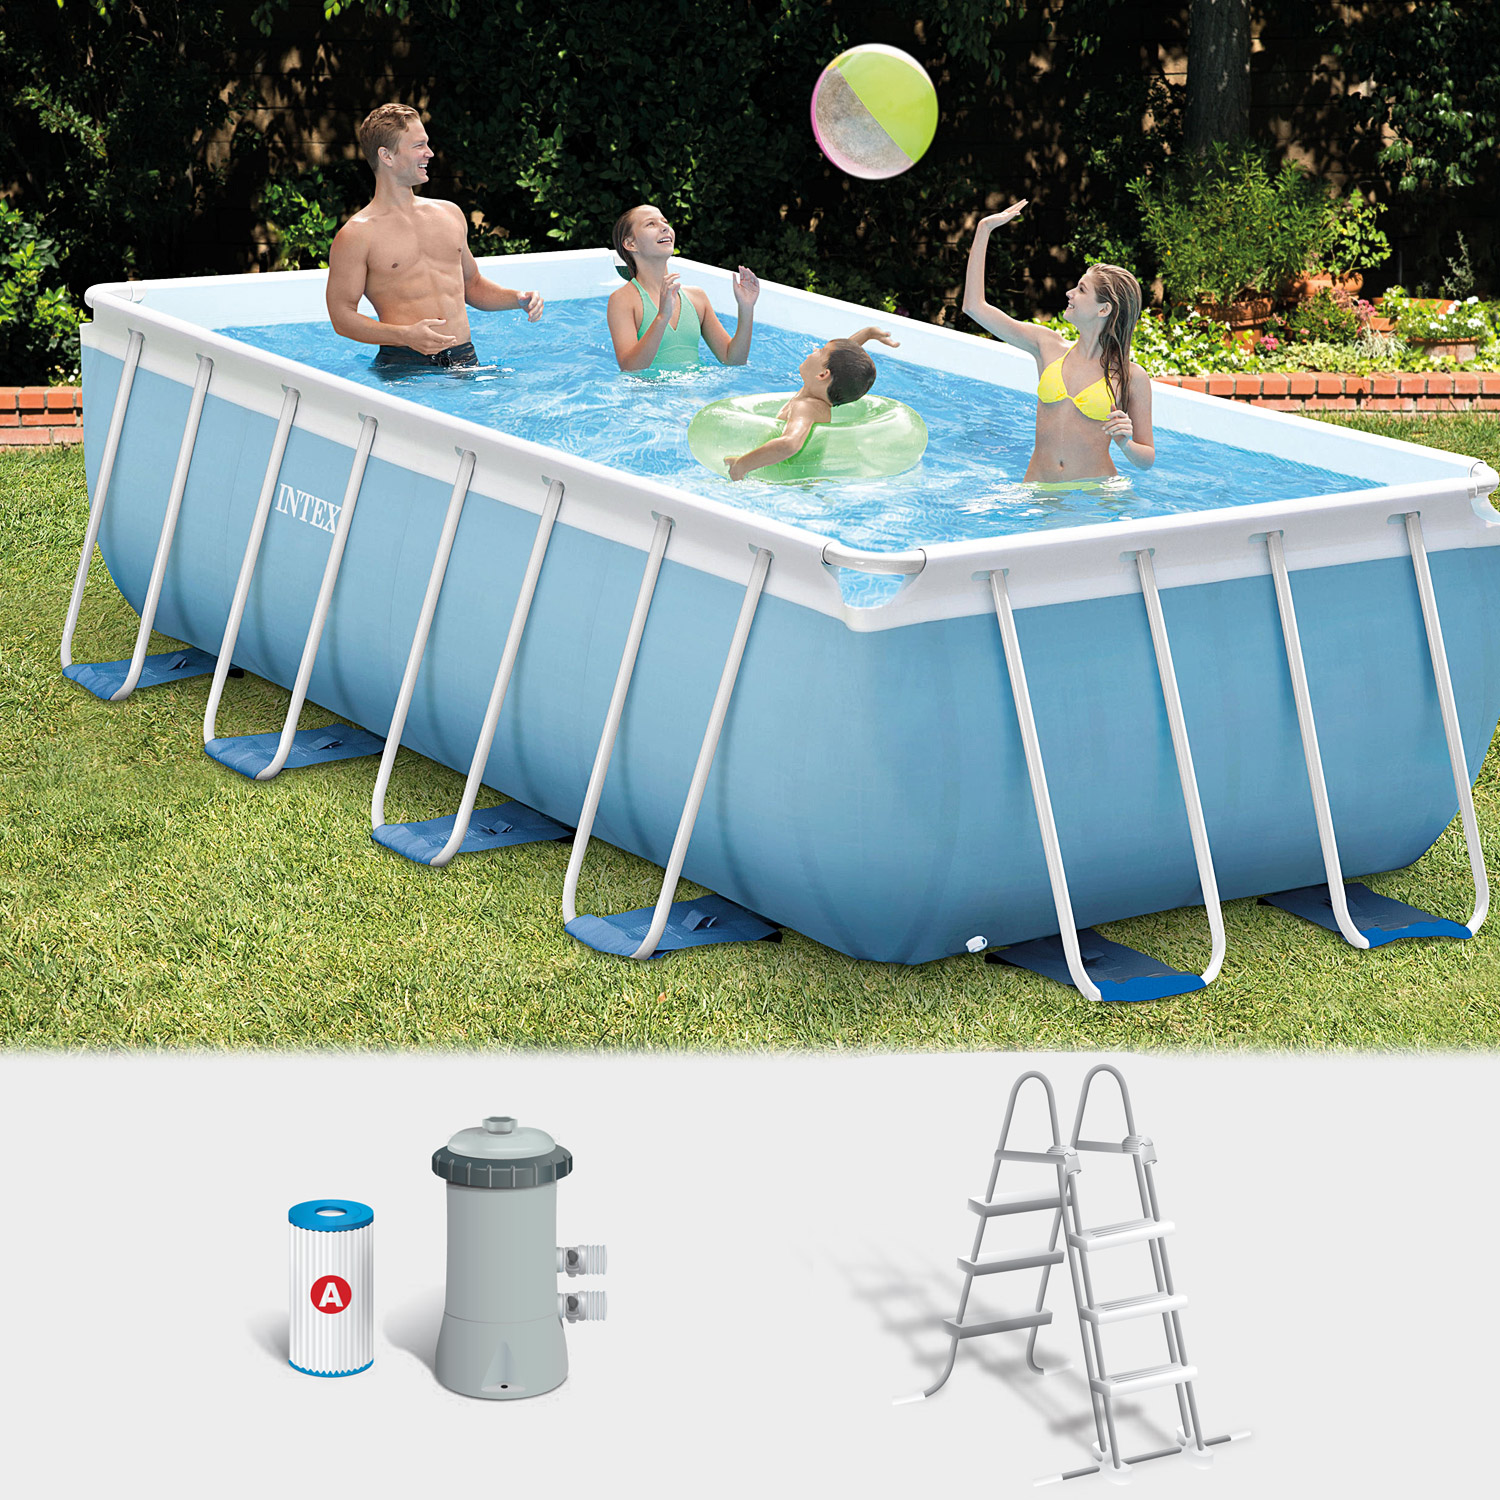 Intex frame pool set prism 400x200x100 cm pumpe schwimmbad for Garten pool intex